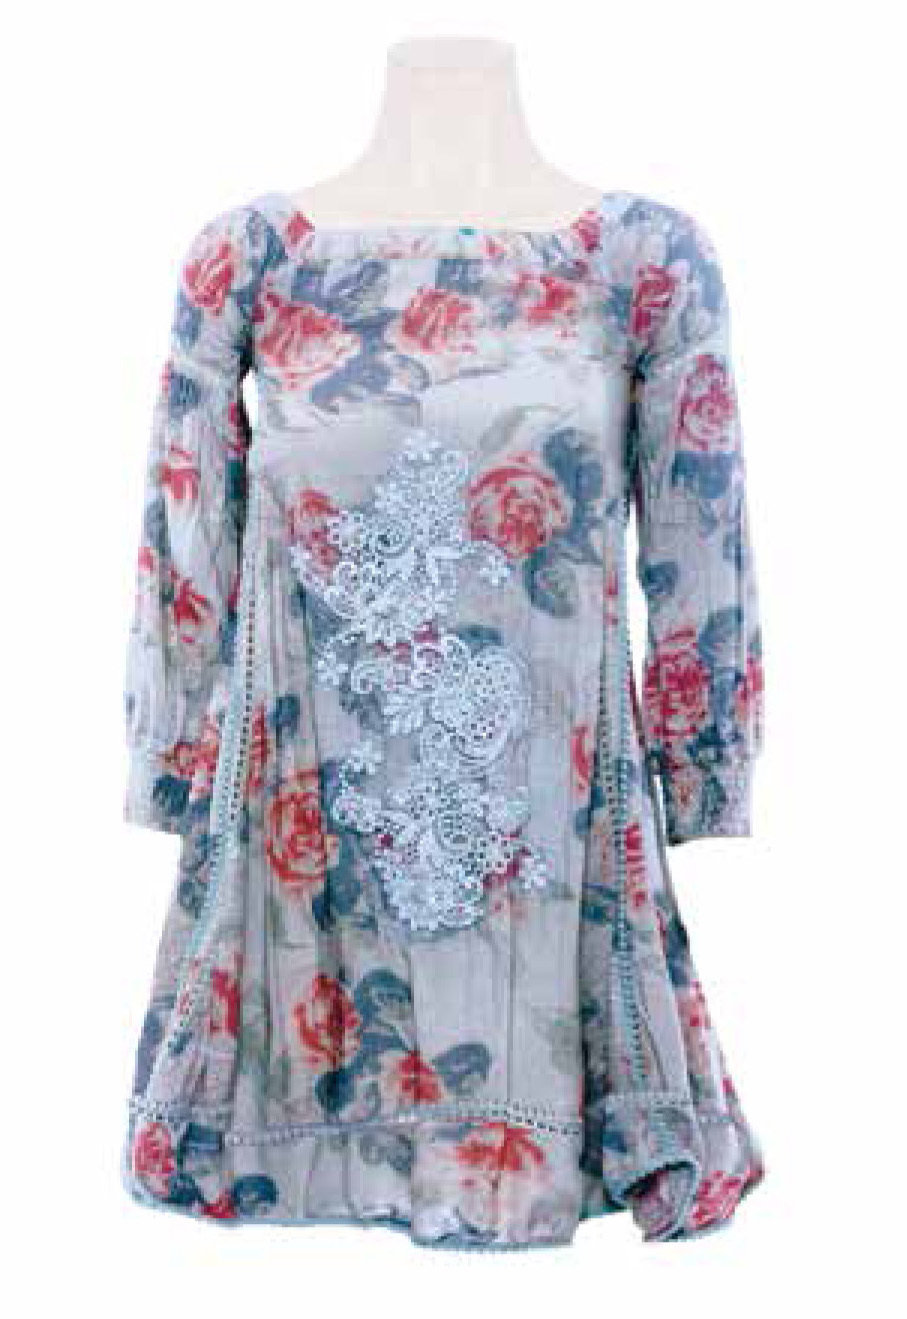 Savage Culture: Deliciously Sexy Ruffled Roses Dress/Tunic Positano II